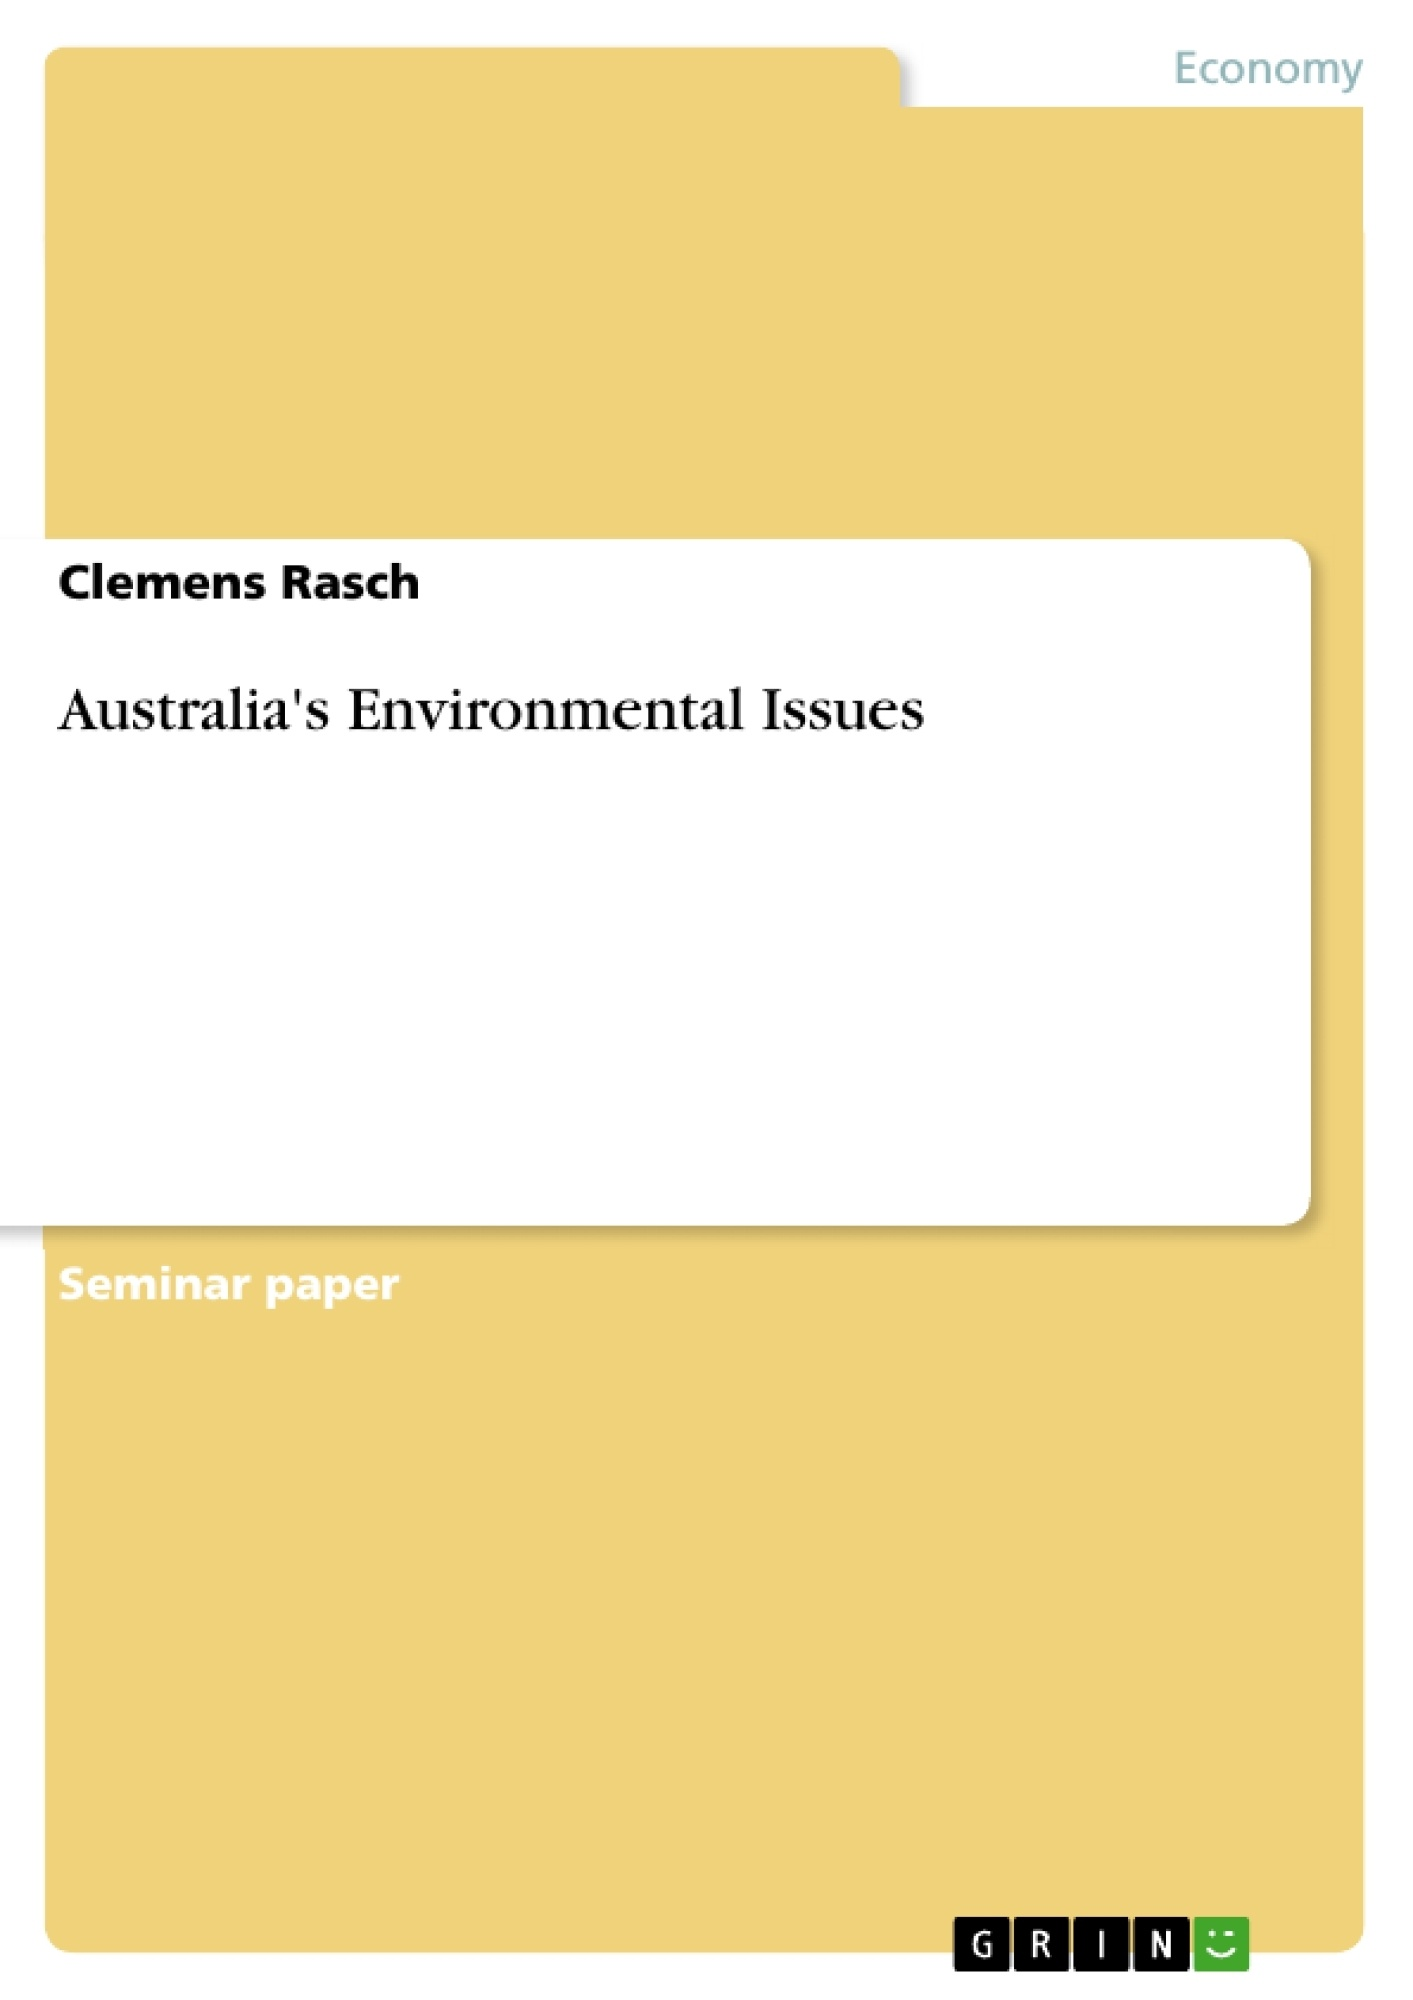 Title: Australia's Environmental Issues